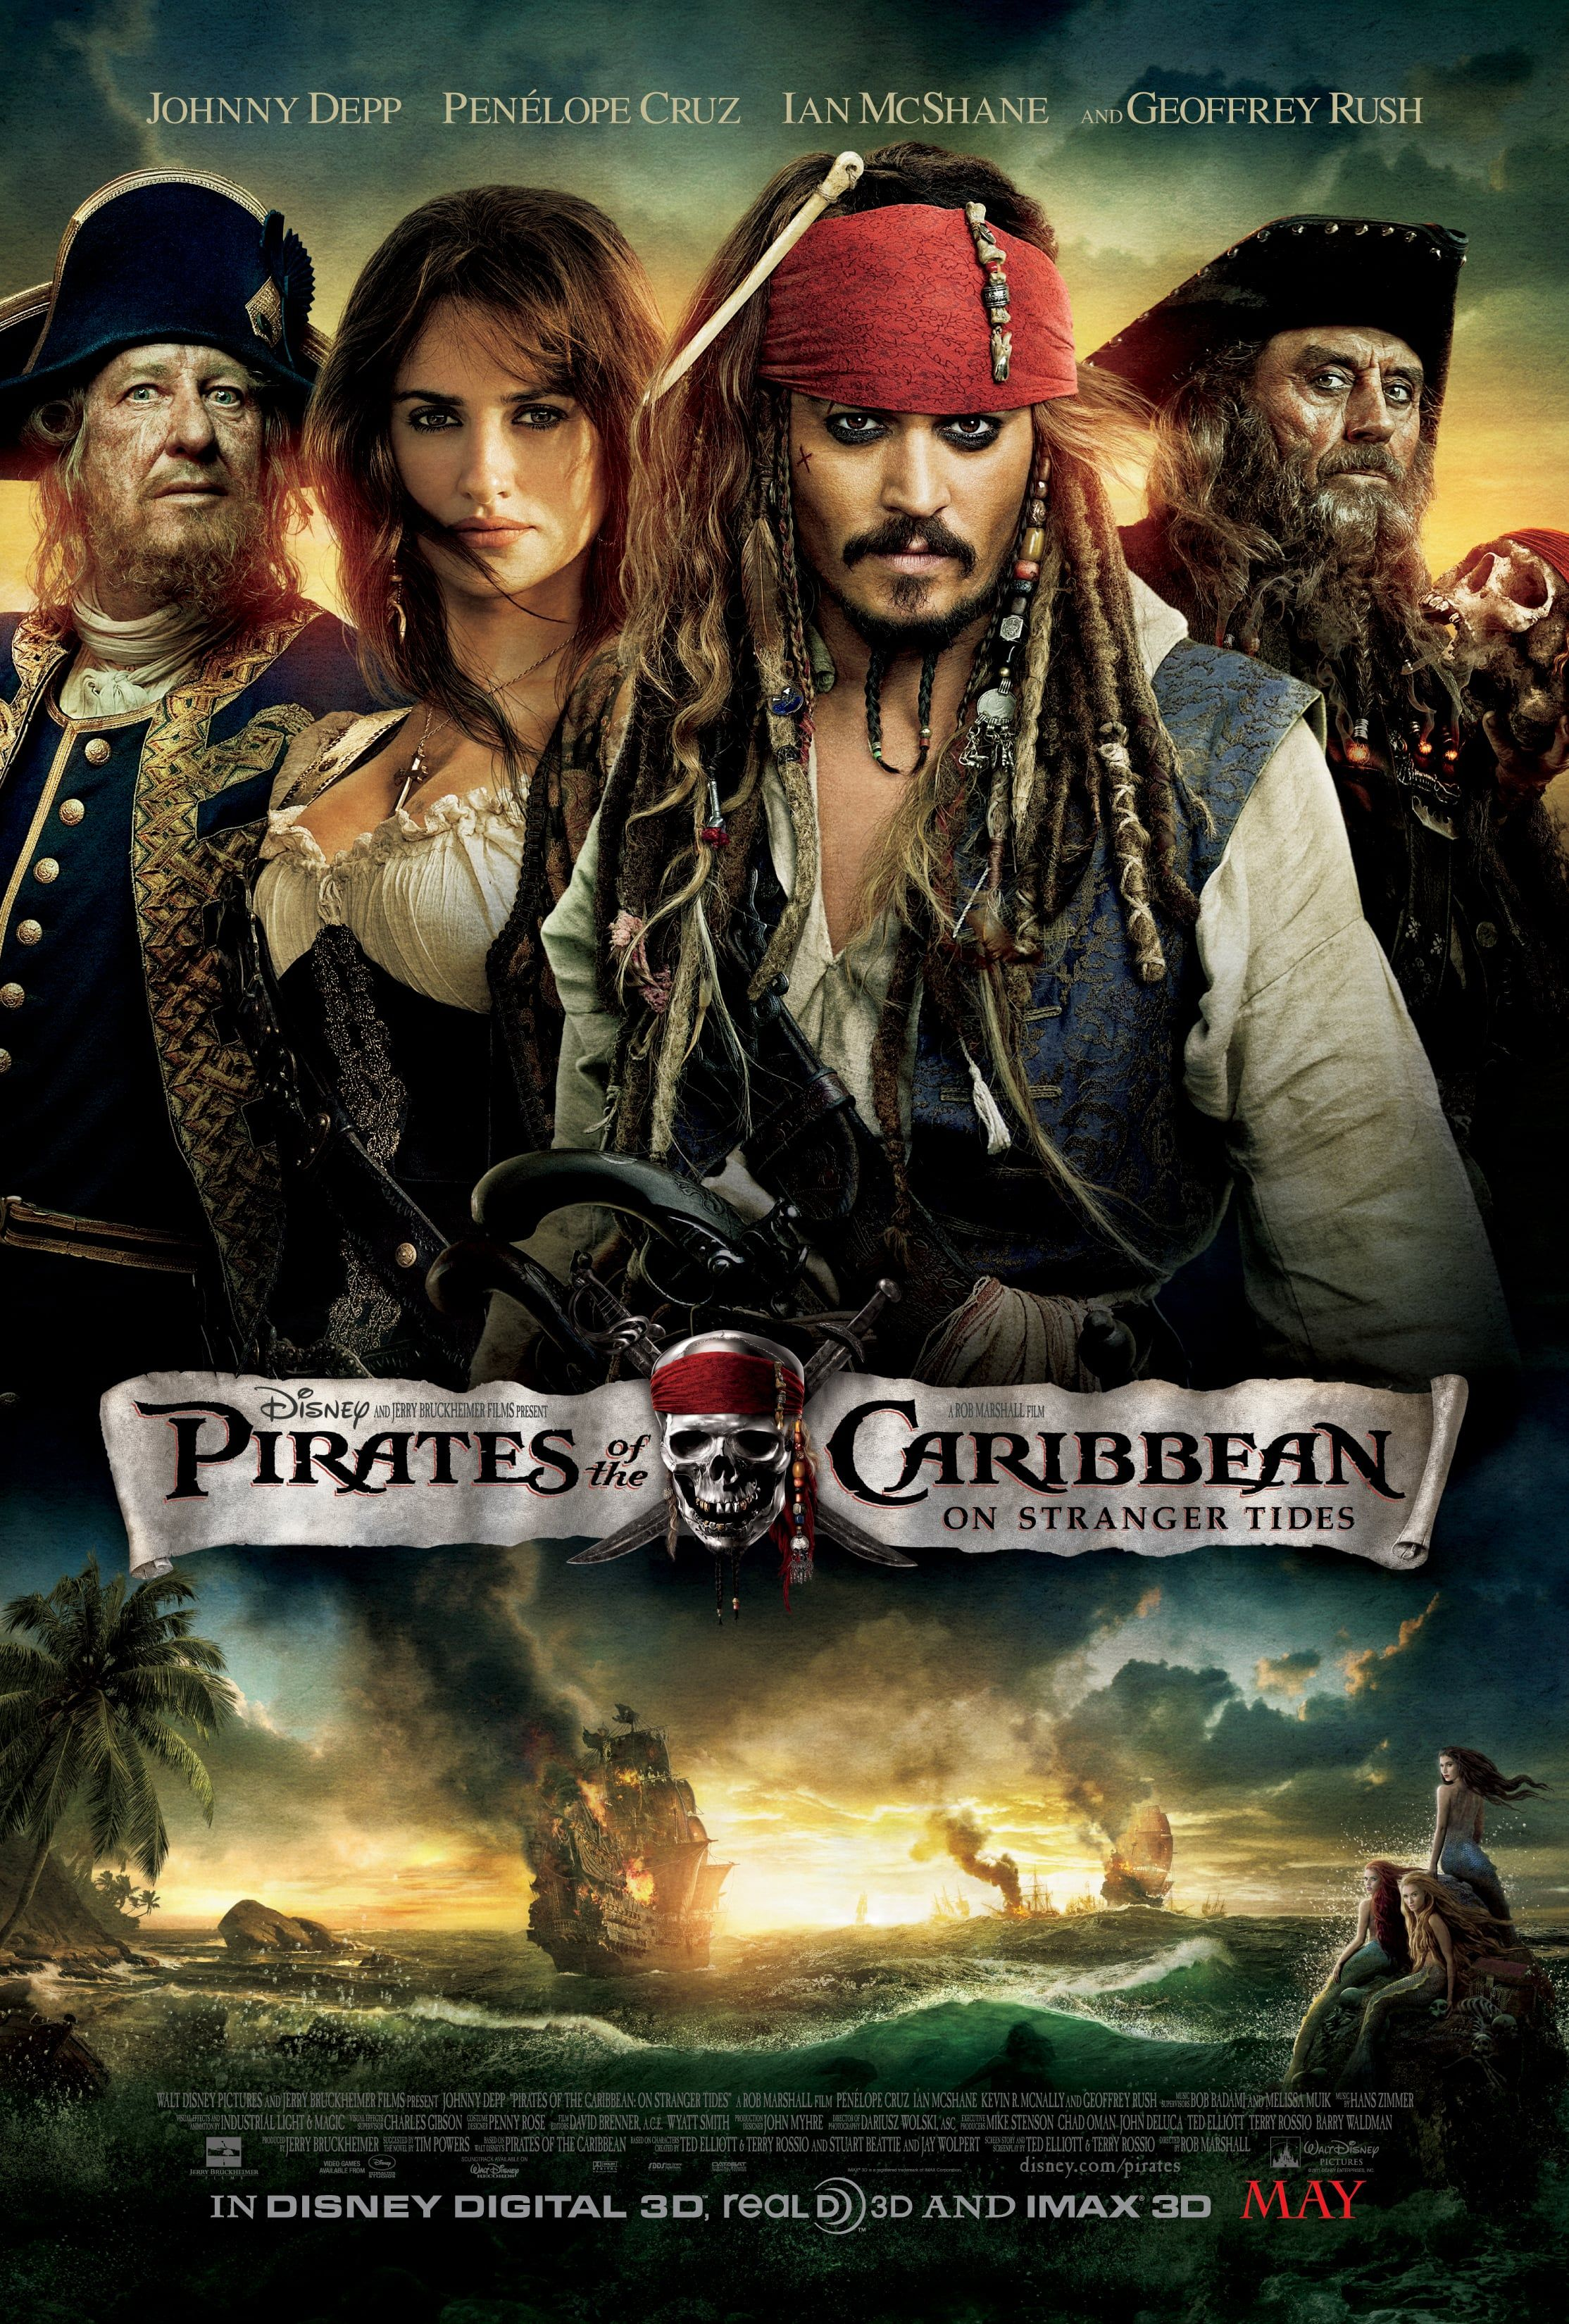 the pirates full movie download 720p